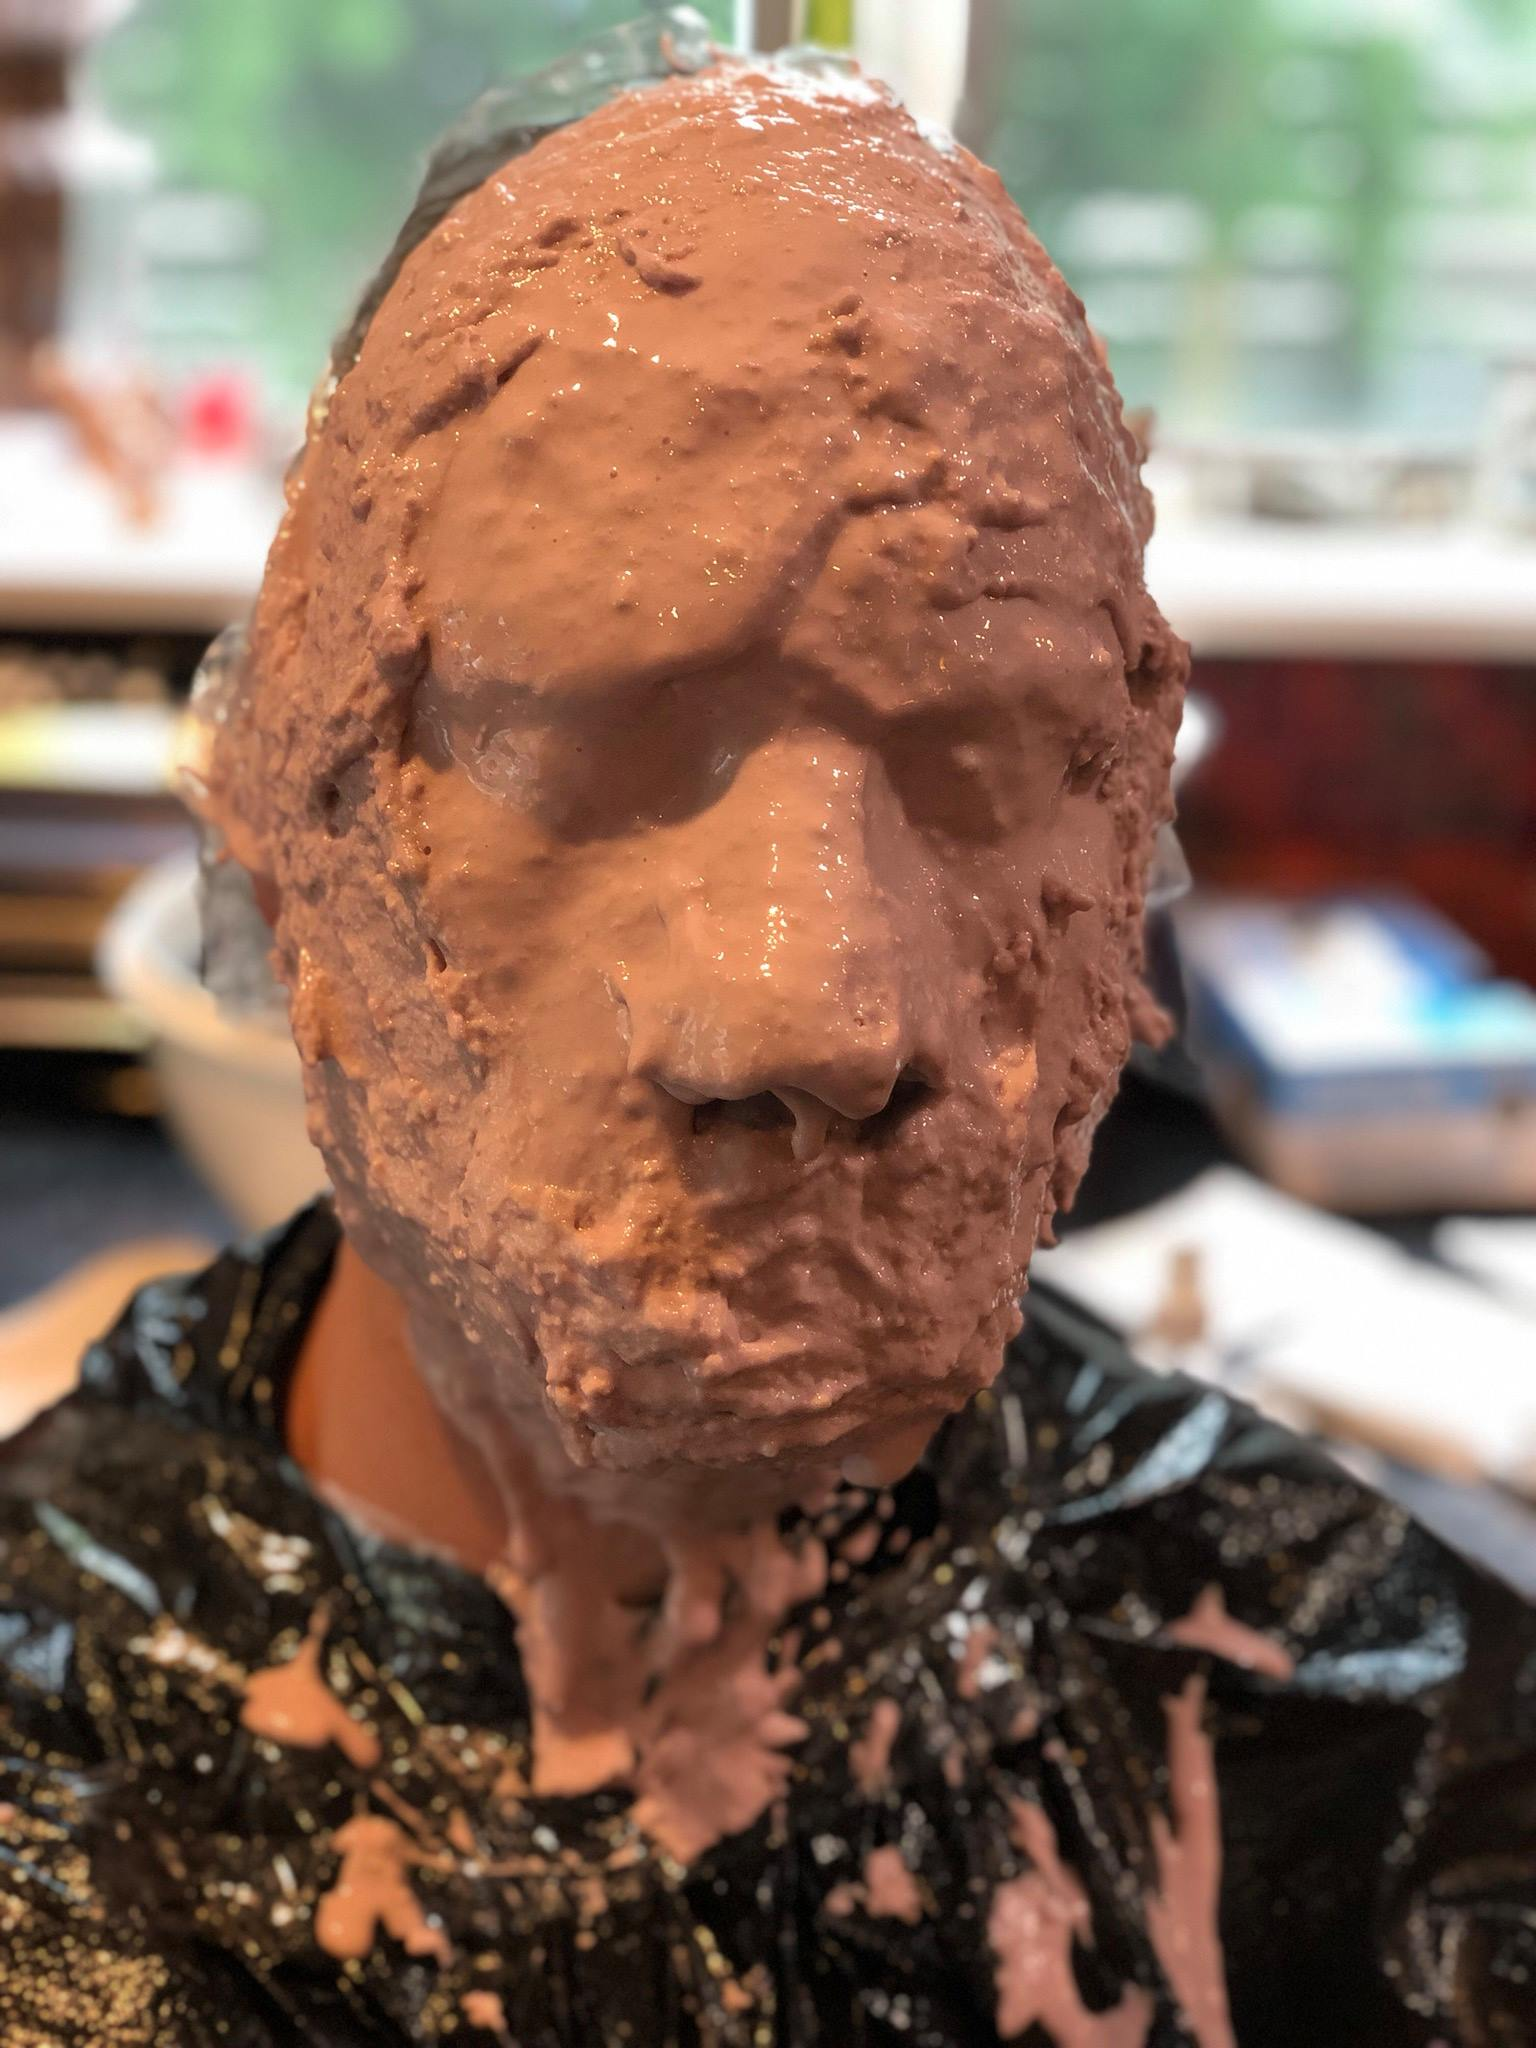 The Alginate mold setting up.